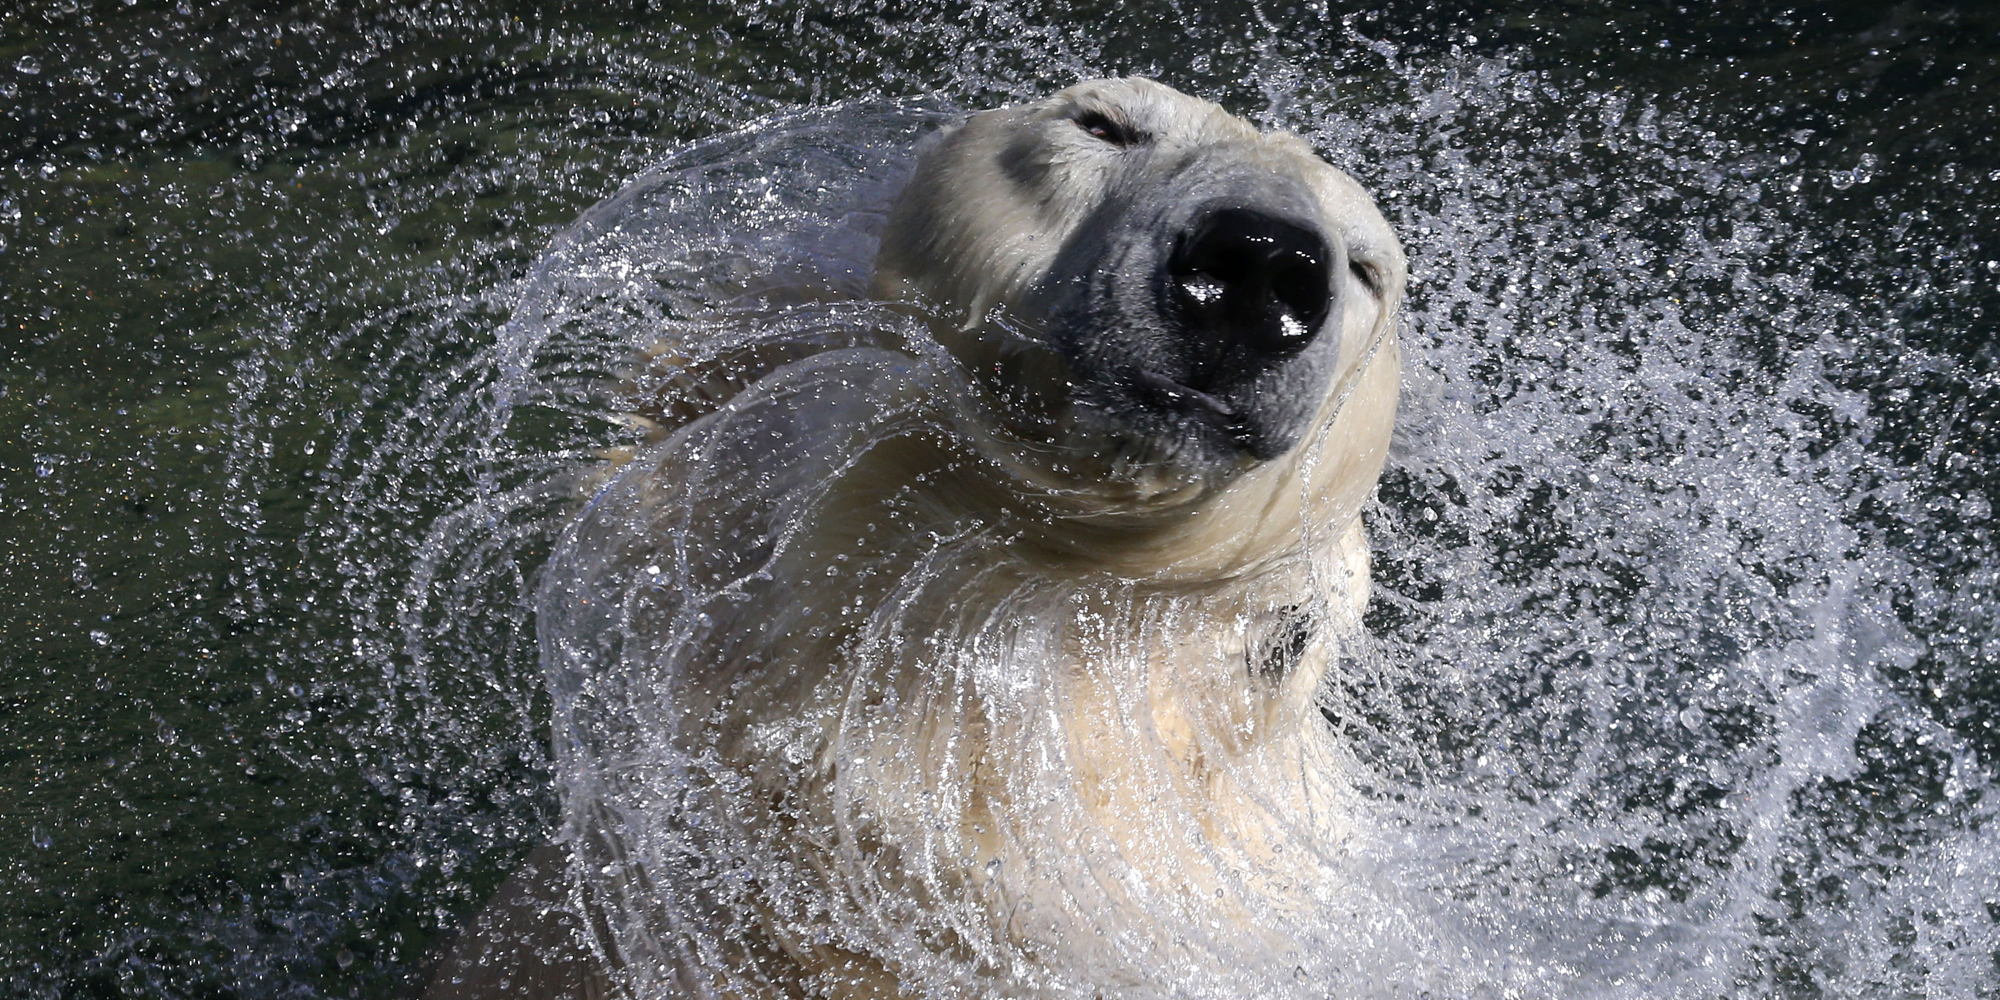 27 year old white polar bear Uslada shakes off water in her pool at the Leningrad Zoo in St. Petersburg, April 24, 2014.   REUTERS/Alexander Demianchuk (RUSSIA - Tags: ANIMALS) - RTR3MHK4